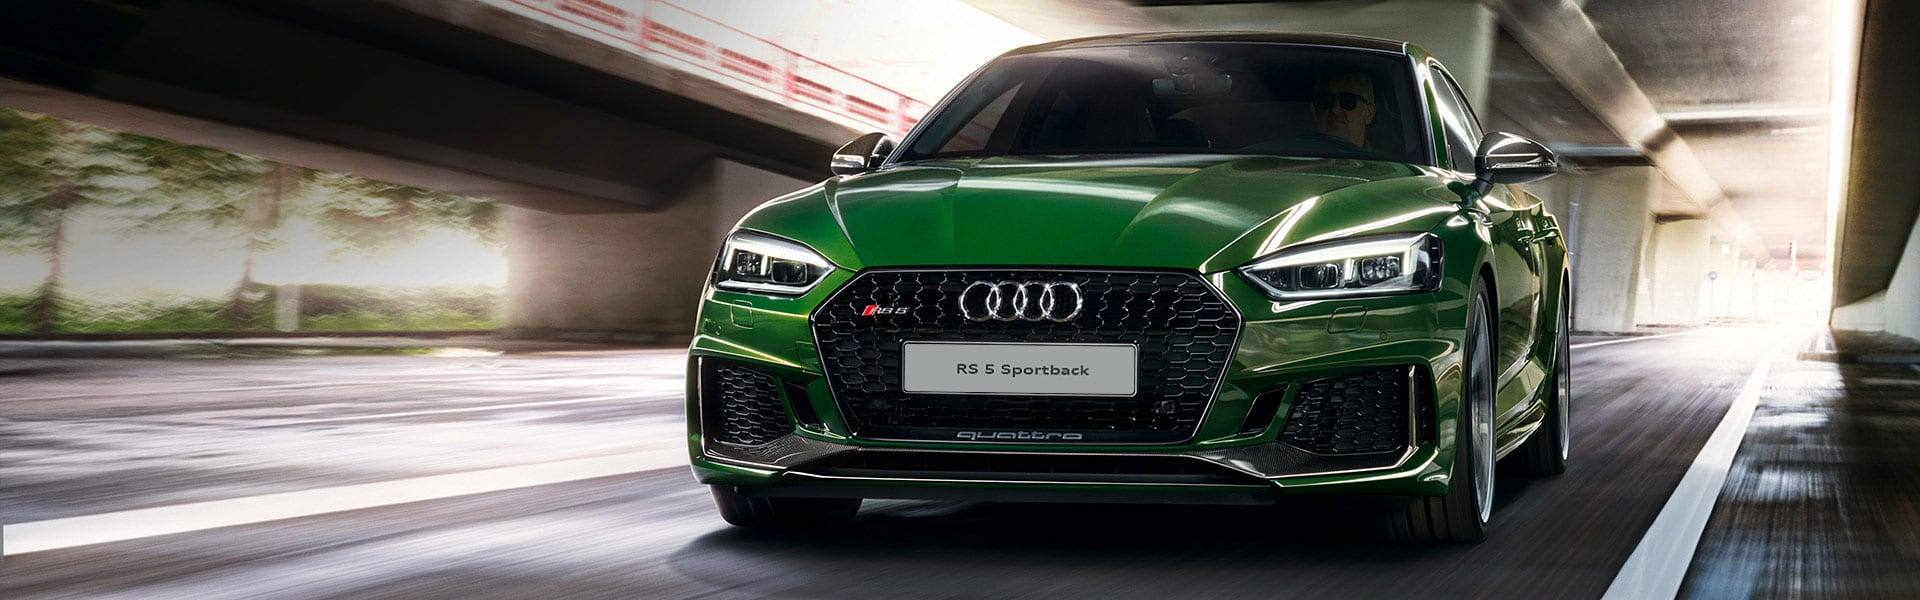 The new Audi RS 5 Sportback 2019